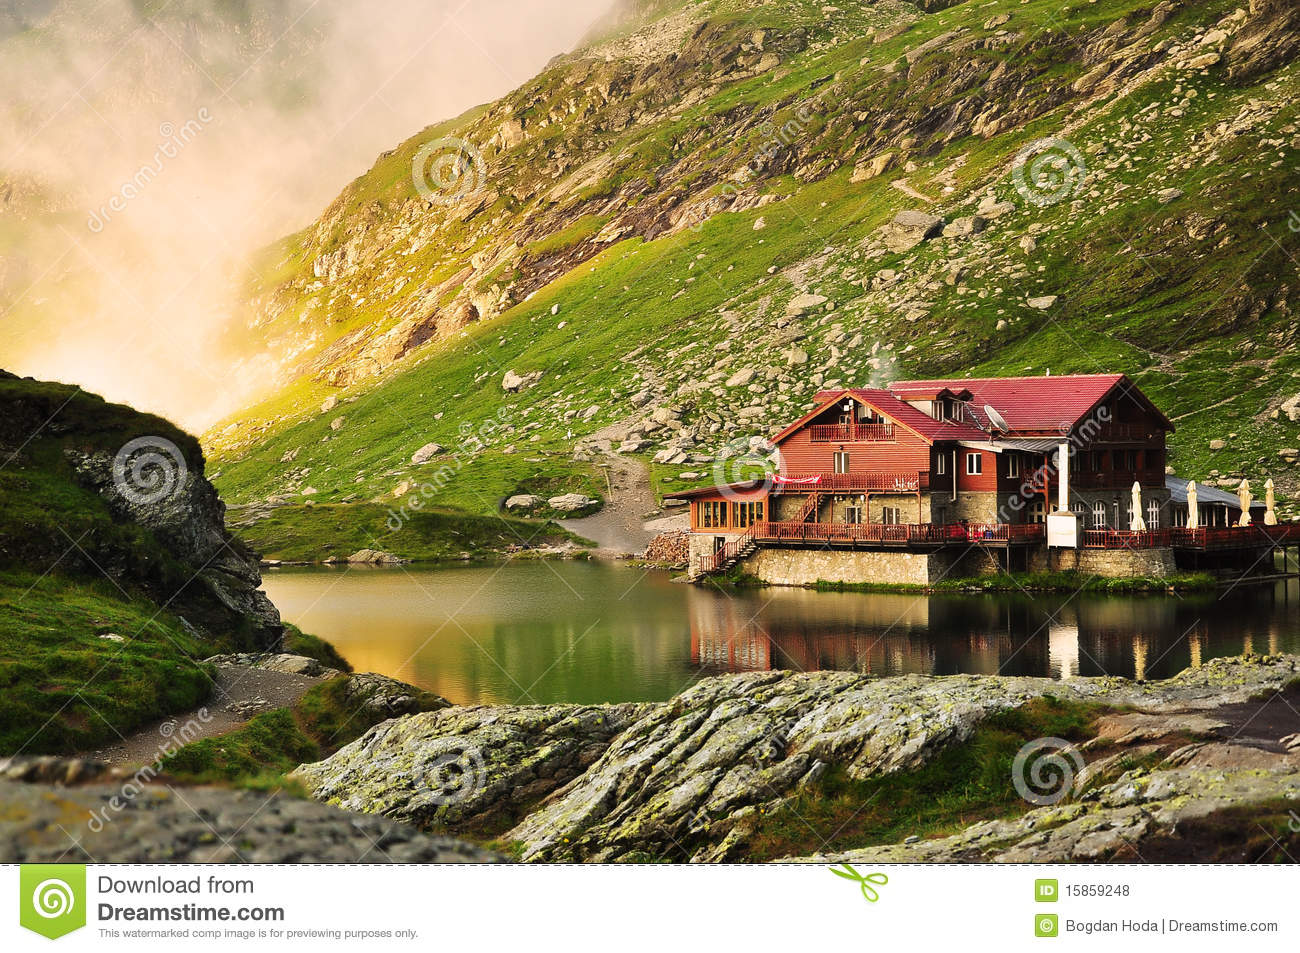 Dream Lake House In The Mountains Royalty Free Stock